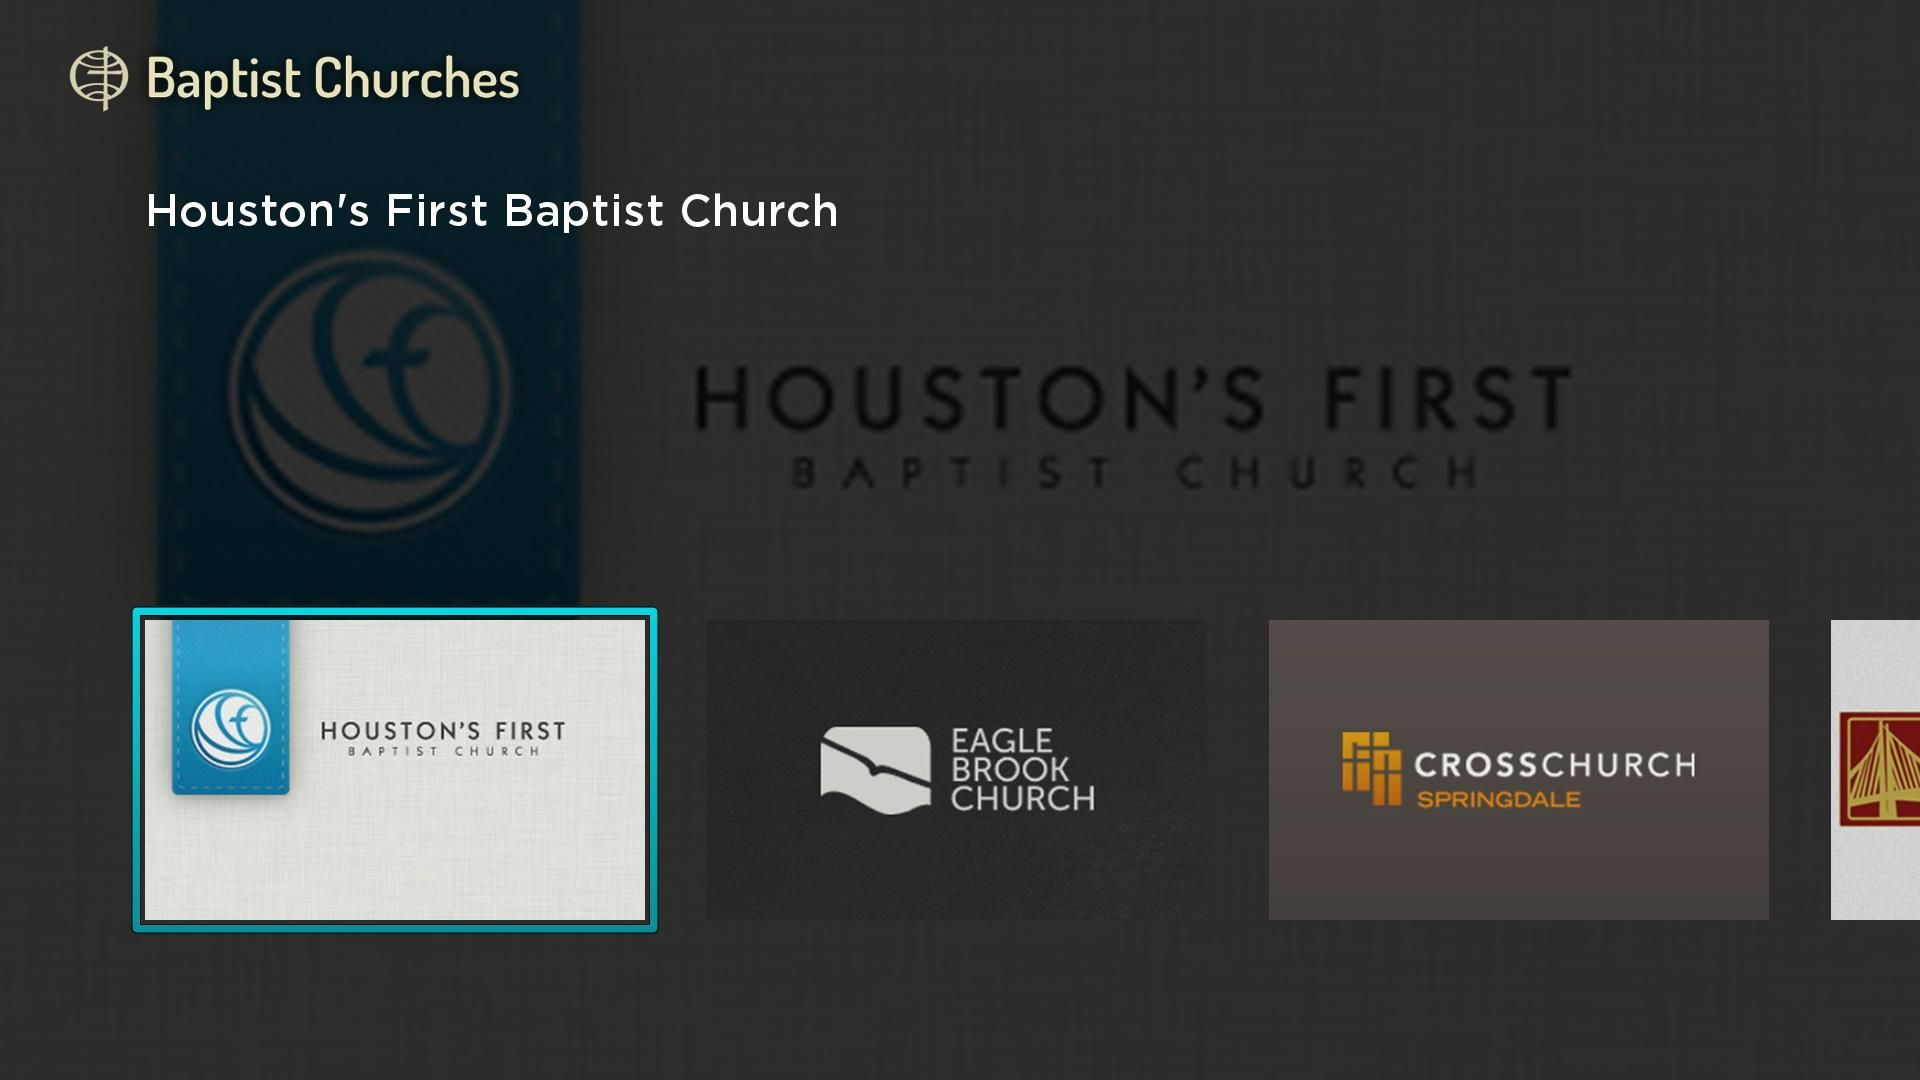 Baptist Churches Screenshot 001